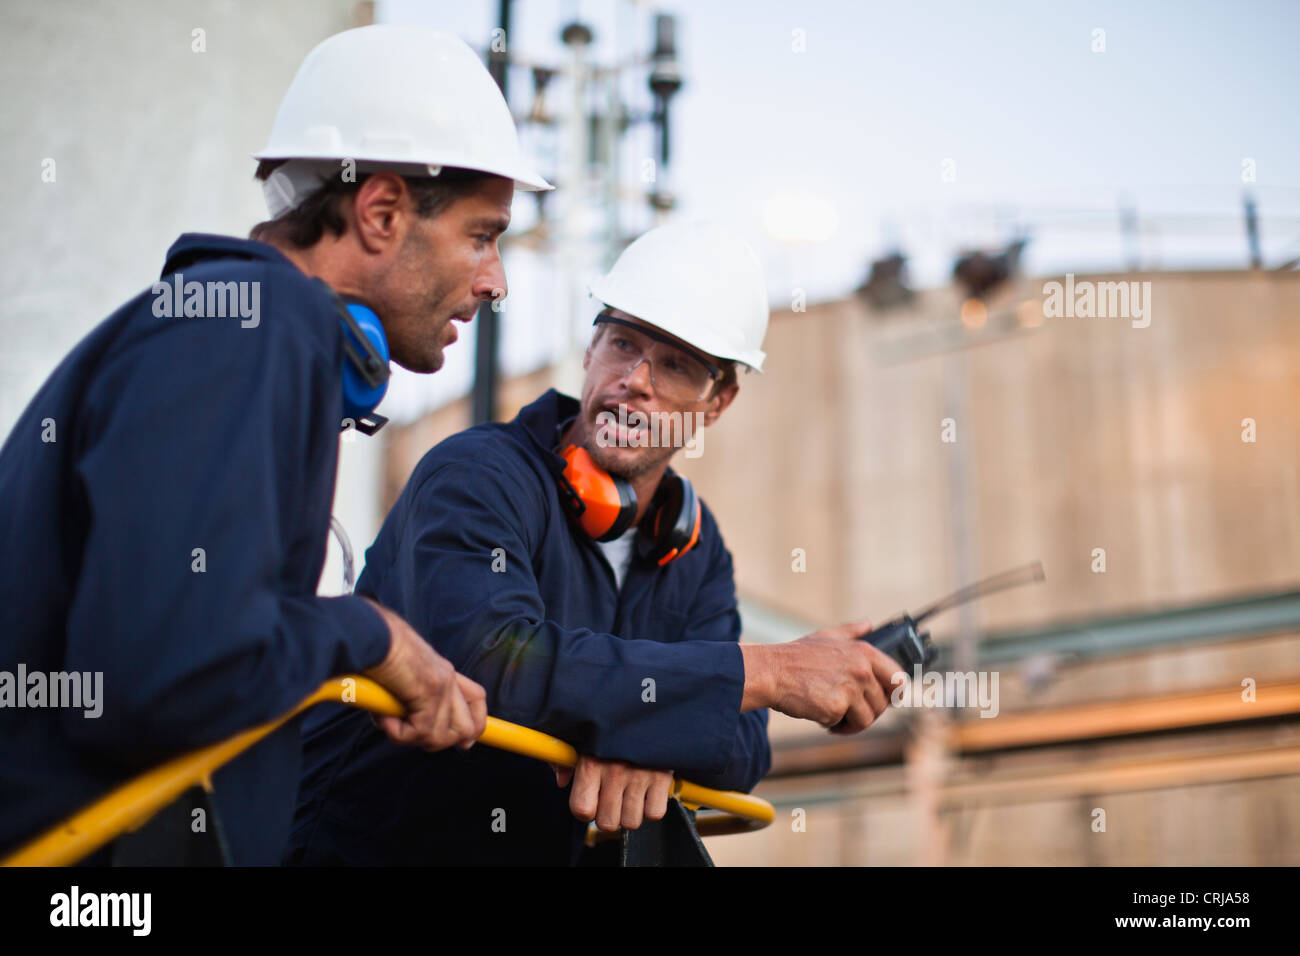 Workers talking at chemical plant - Stock Image